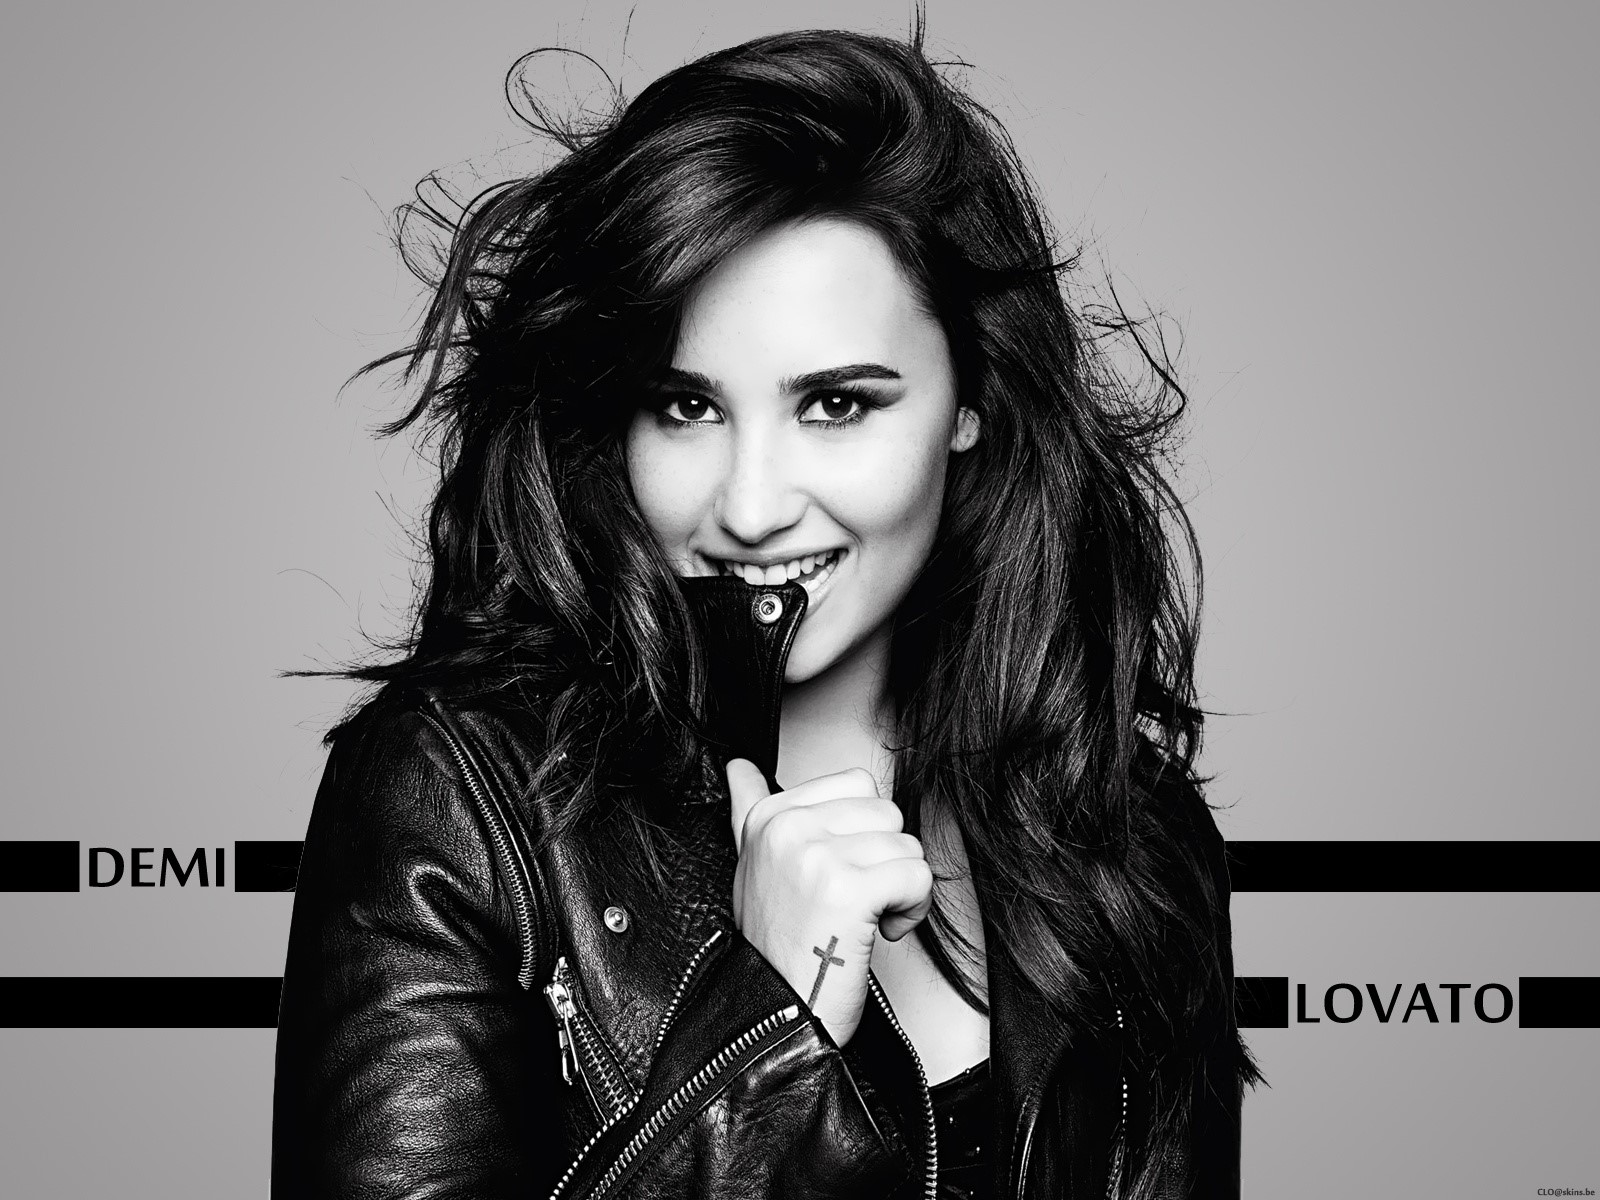 Fondos de pantalla Demi lovato para Girlfriend